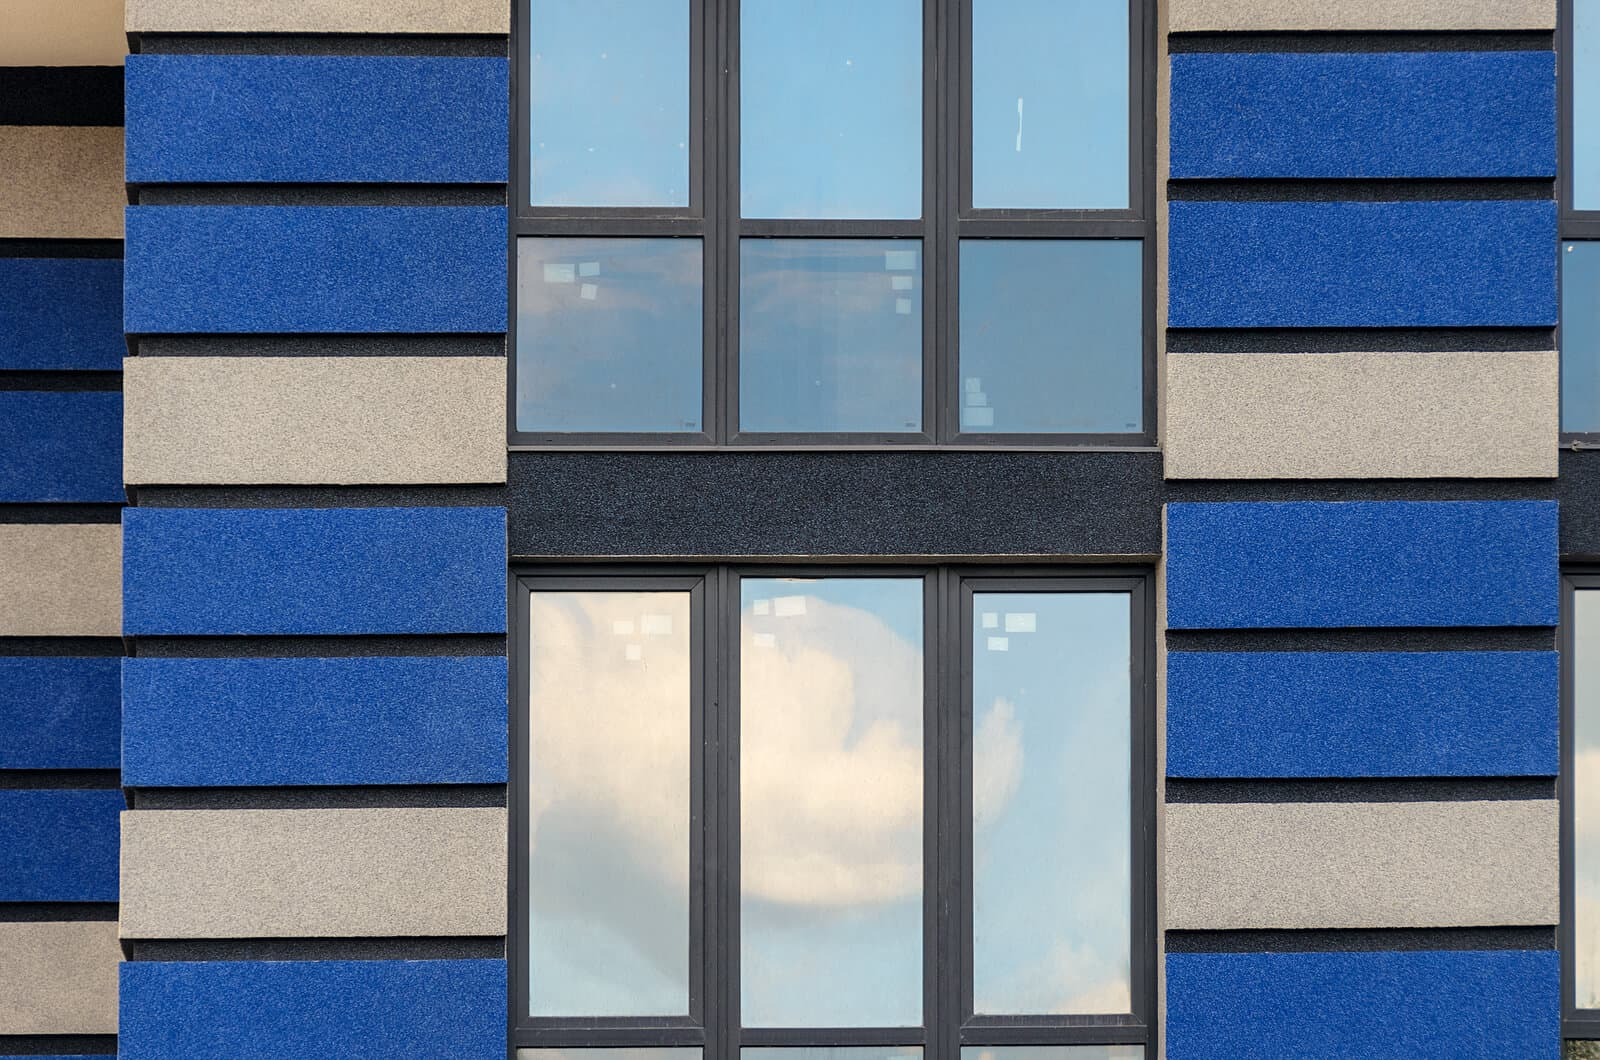 Windows on block of flats